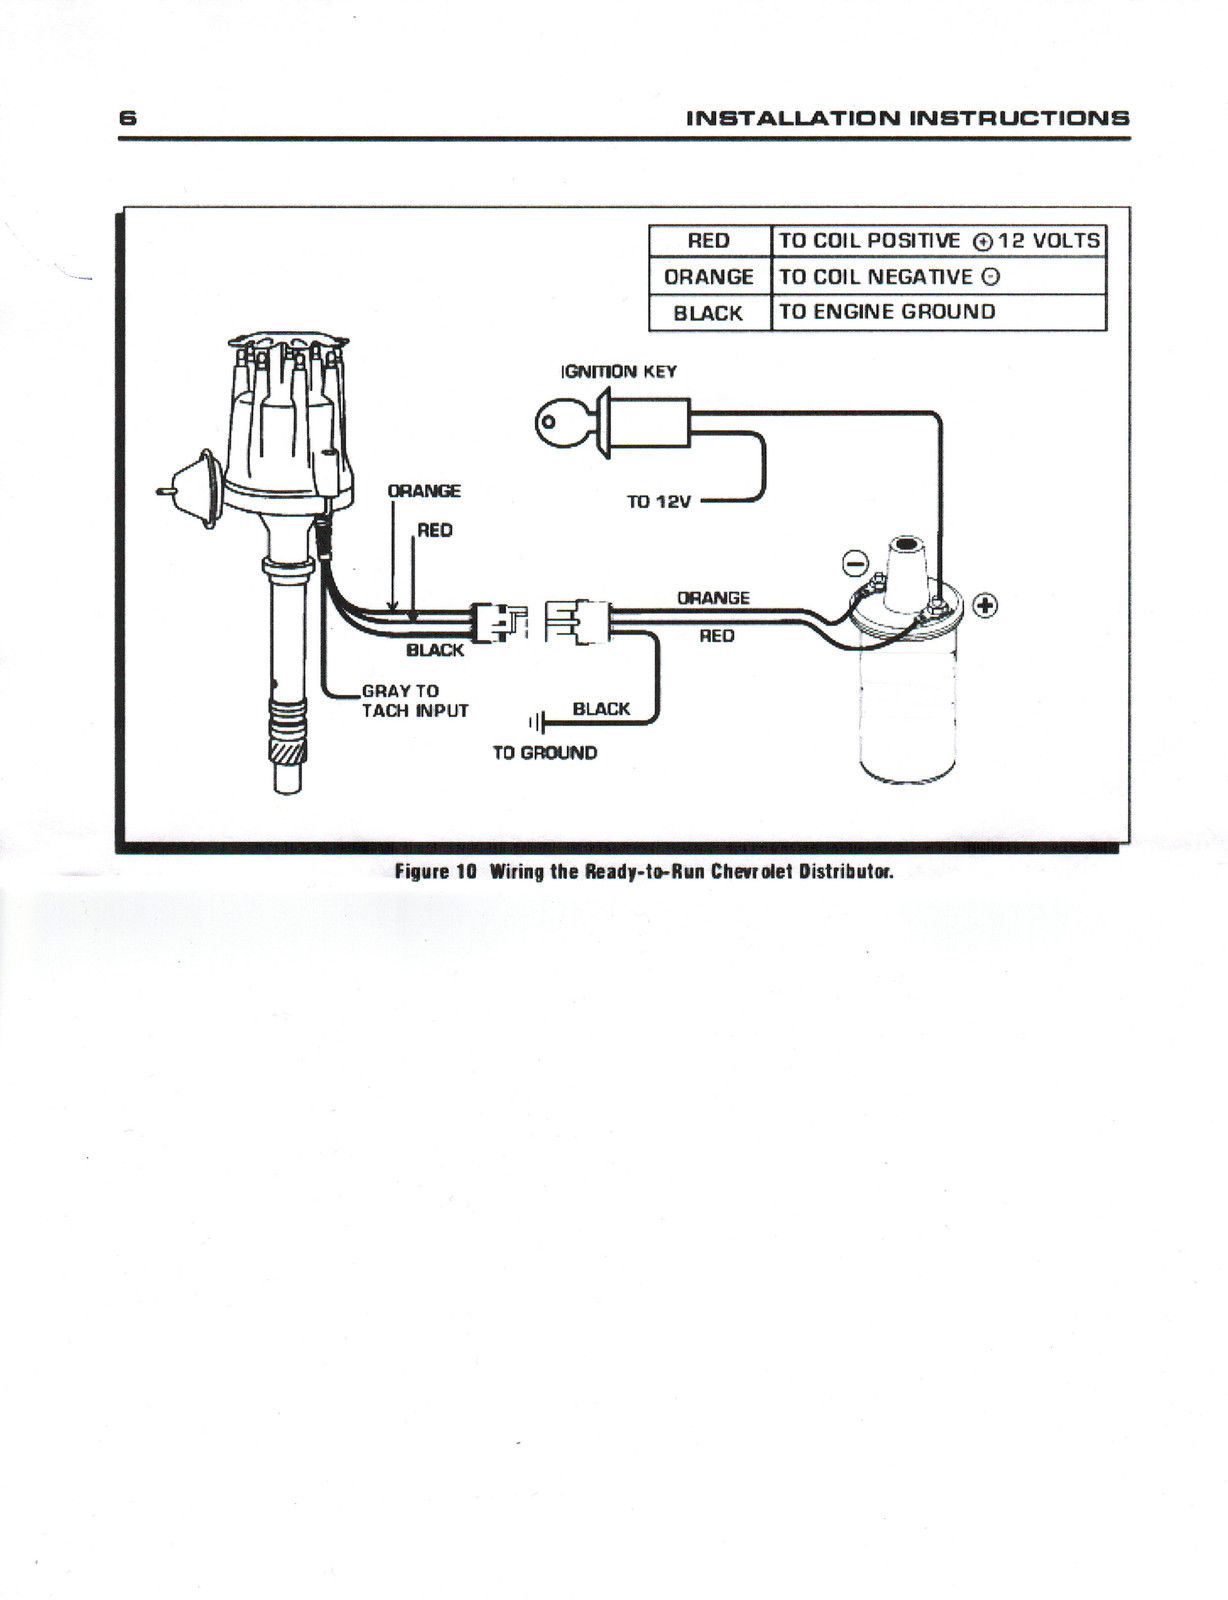 small cap chevy inline 6 cylinder 194, 216 \u0026 235 black hei distributor, coil,plug wires Chevy 350 Hei Wiring-Diagram